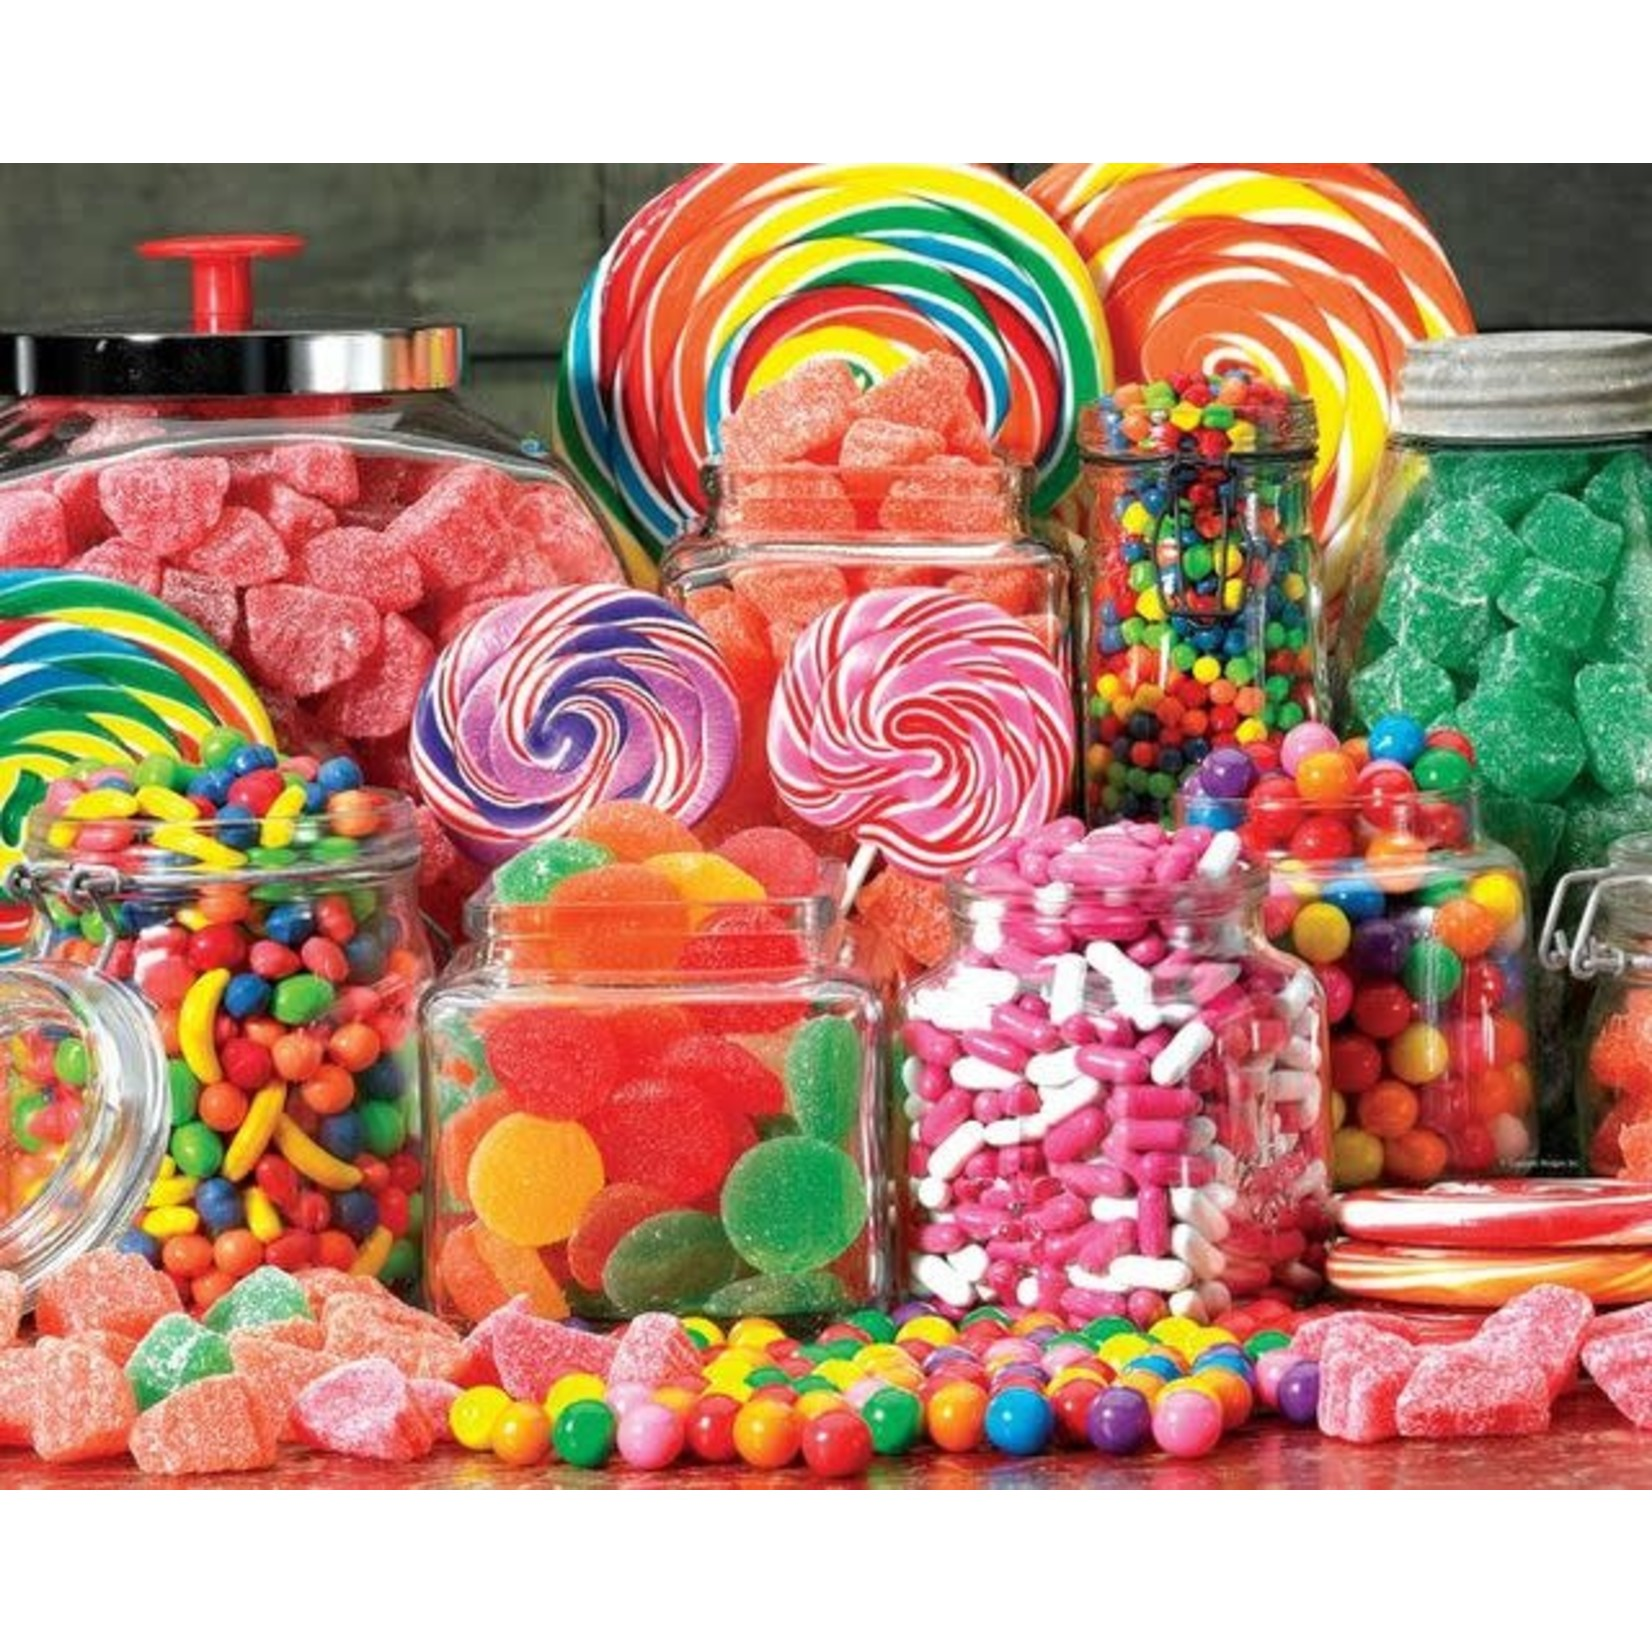 CANDY GALORE PUZZLE